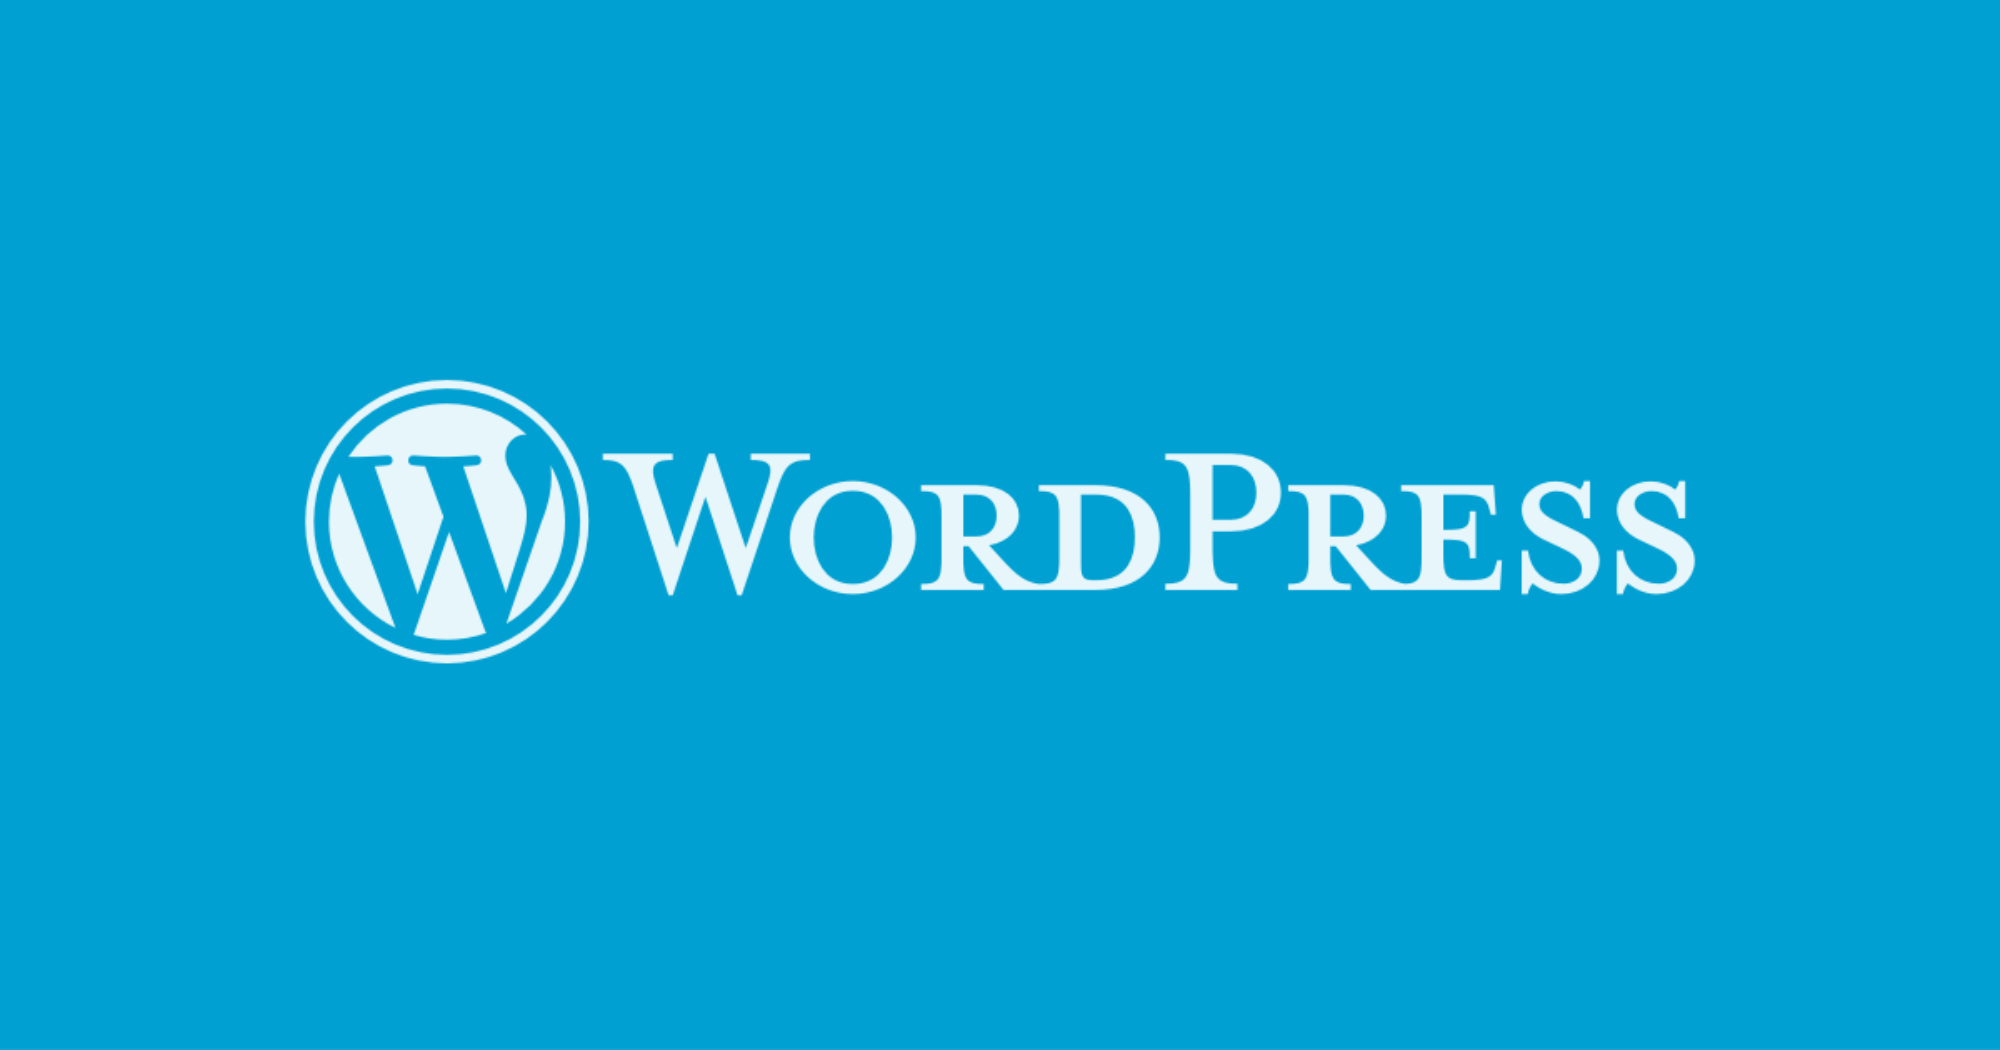 Instalando o WordPress Local no xampp